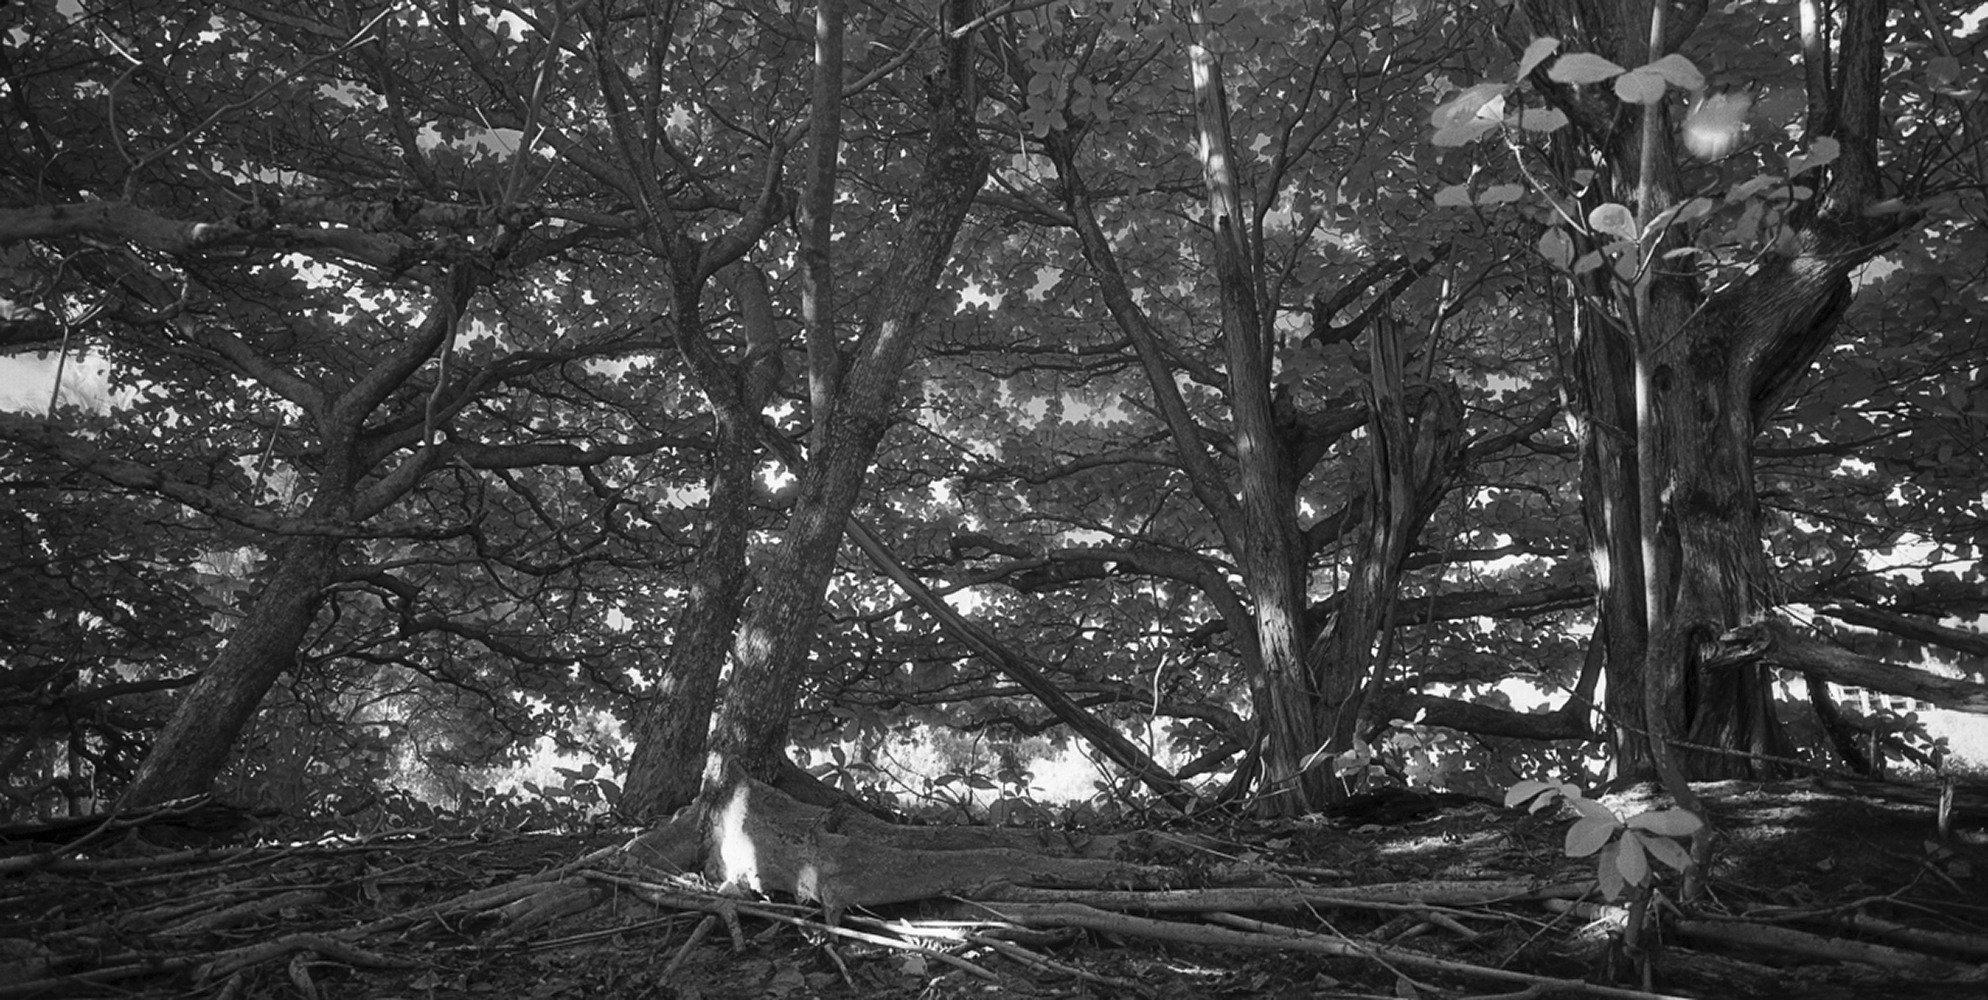 Kauai_11_12_4 , 2012-15, Black and white infrared (from medium format film) archival pigment print, 31.5 x 55 inches